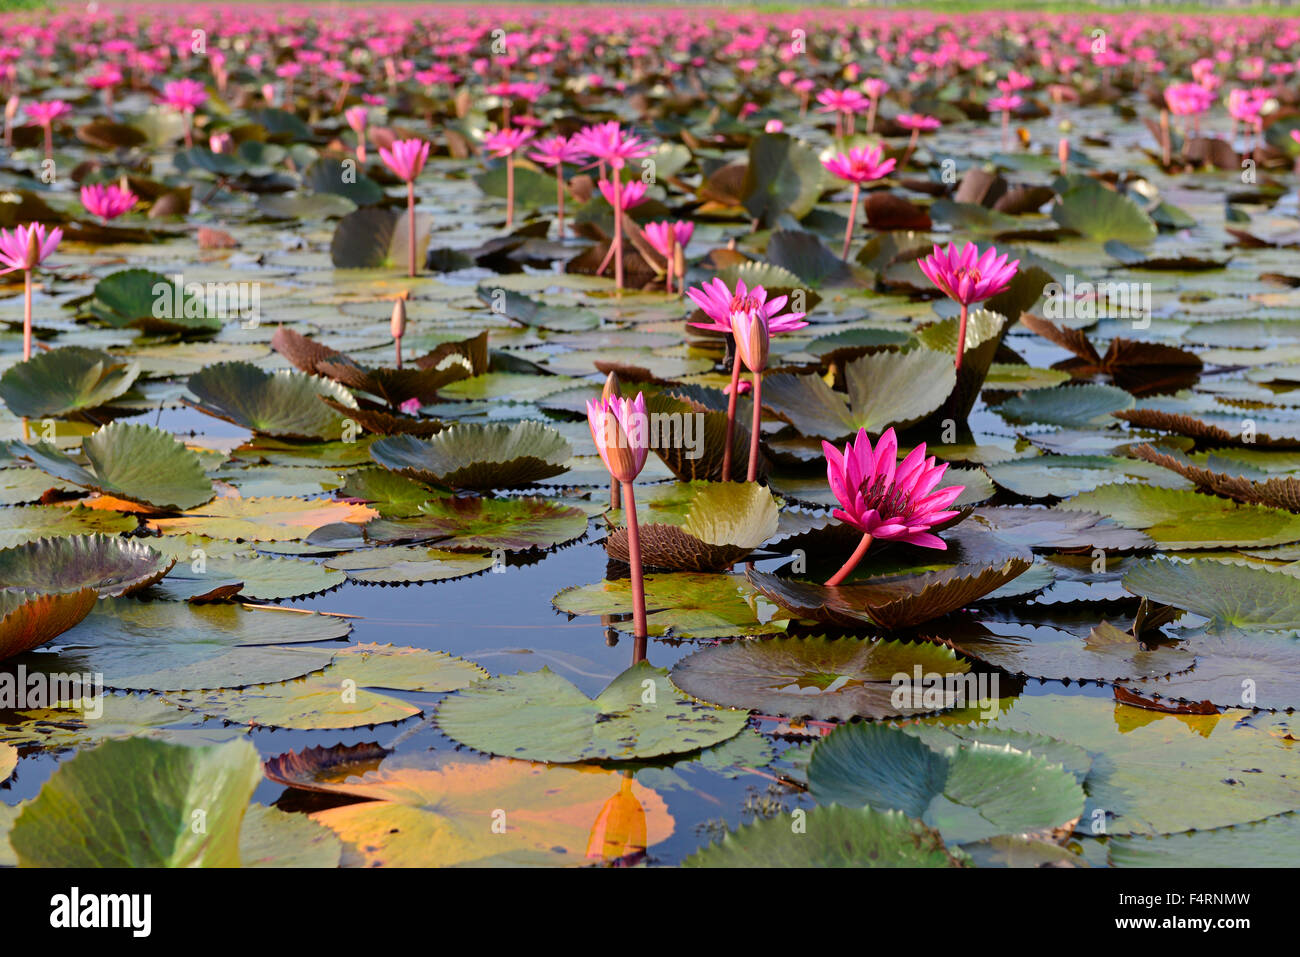 Indian red water lily nymphaea stock photos indian red water lily red indian water lily water lily open flower tale noi patthalung izmirmasajfo